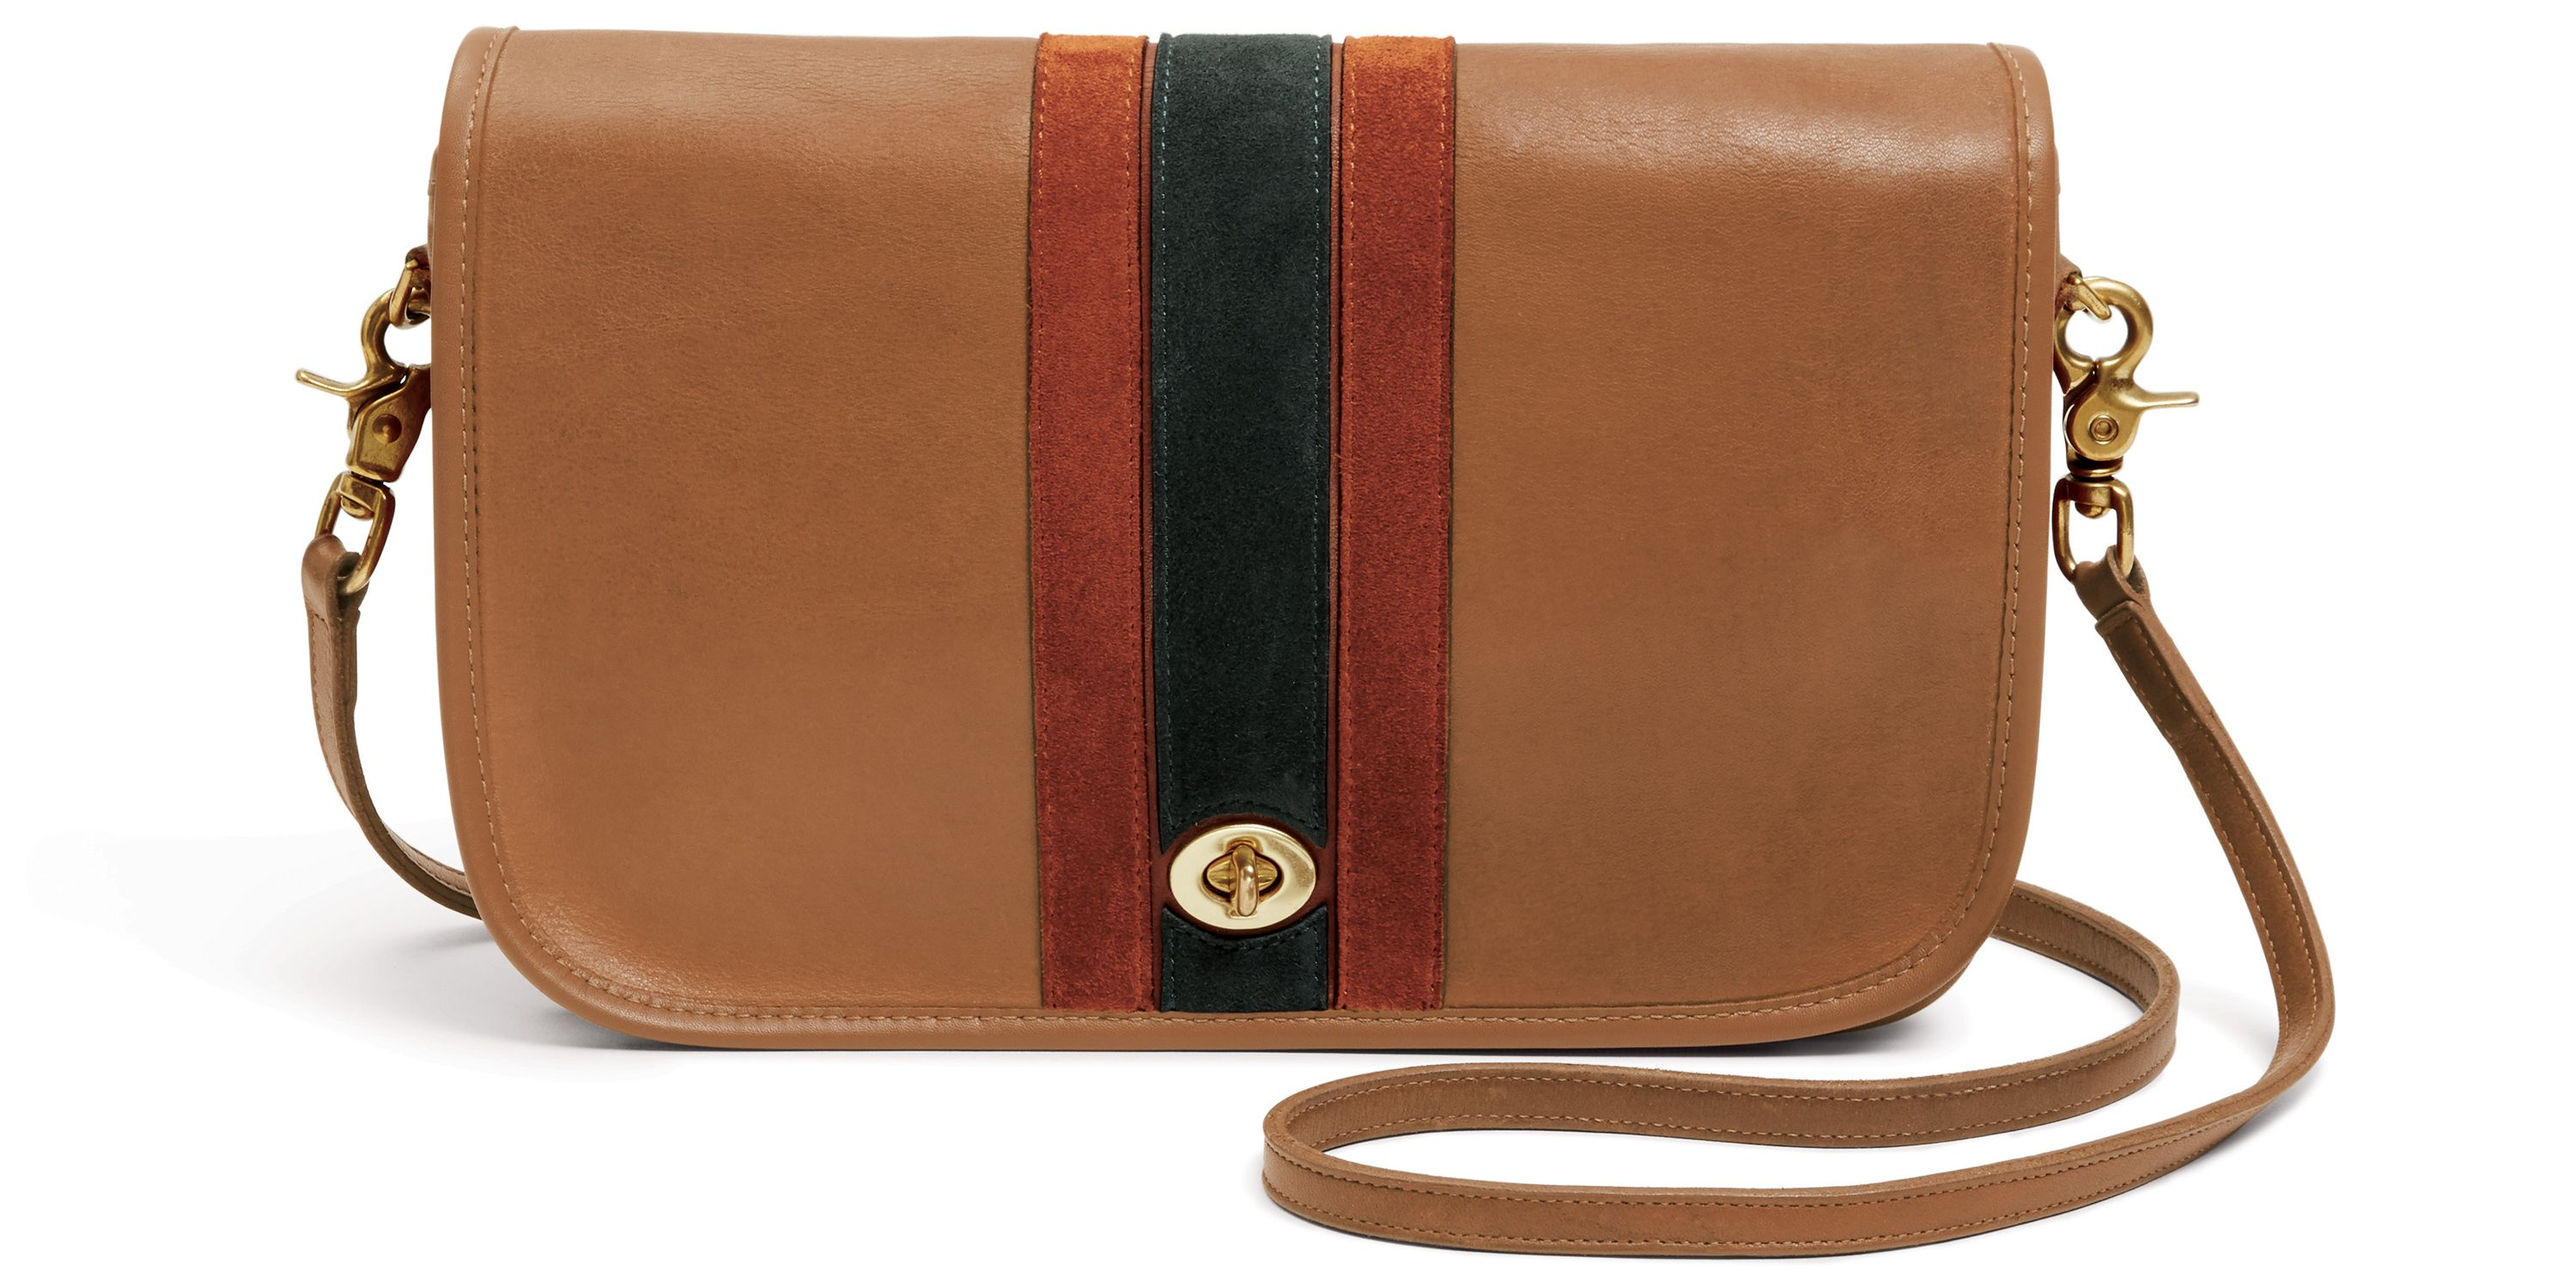 7b37bd84f3f Coach's 75th Anniversary - Coach's Release of Iconic Vintage Bags